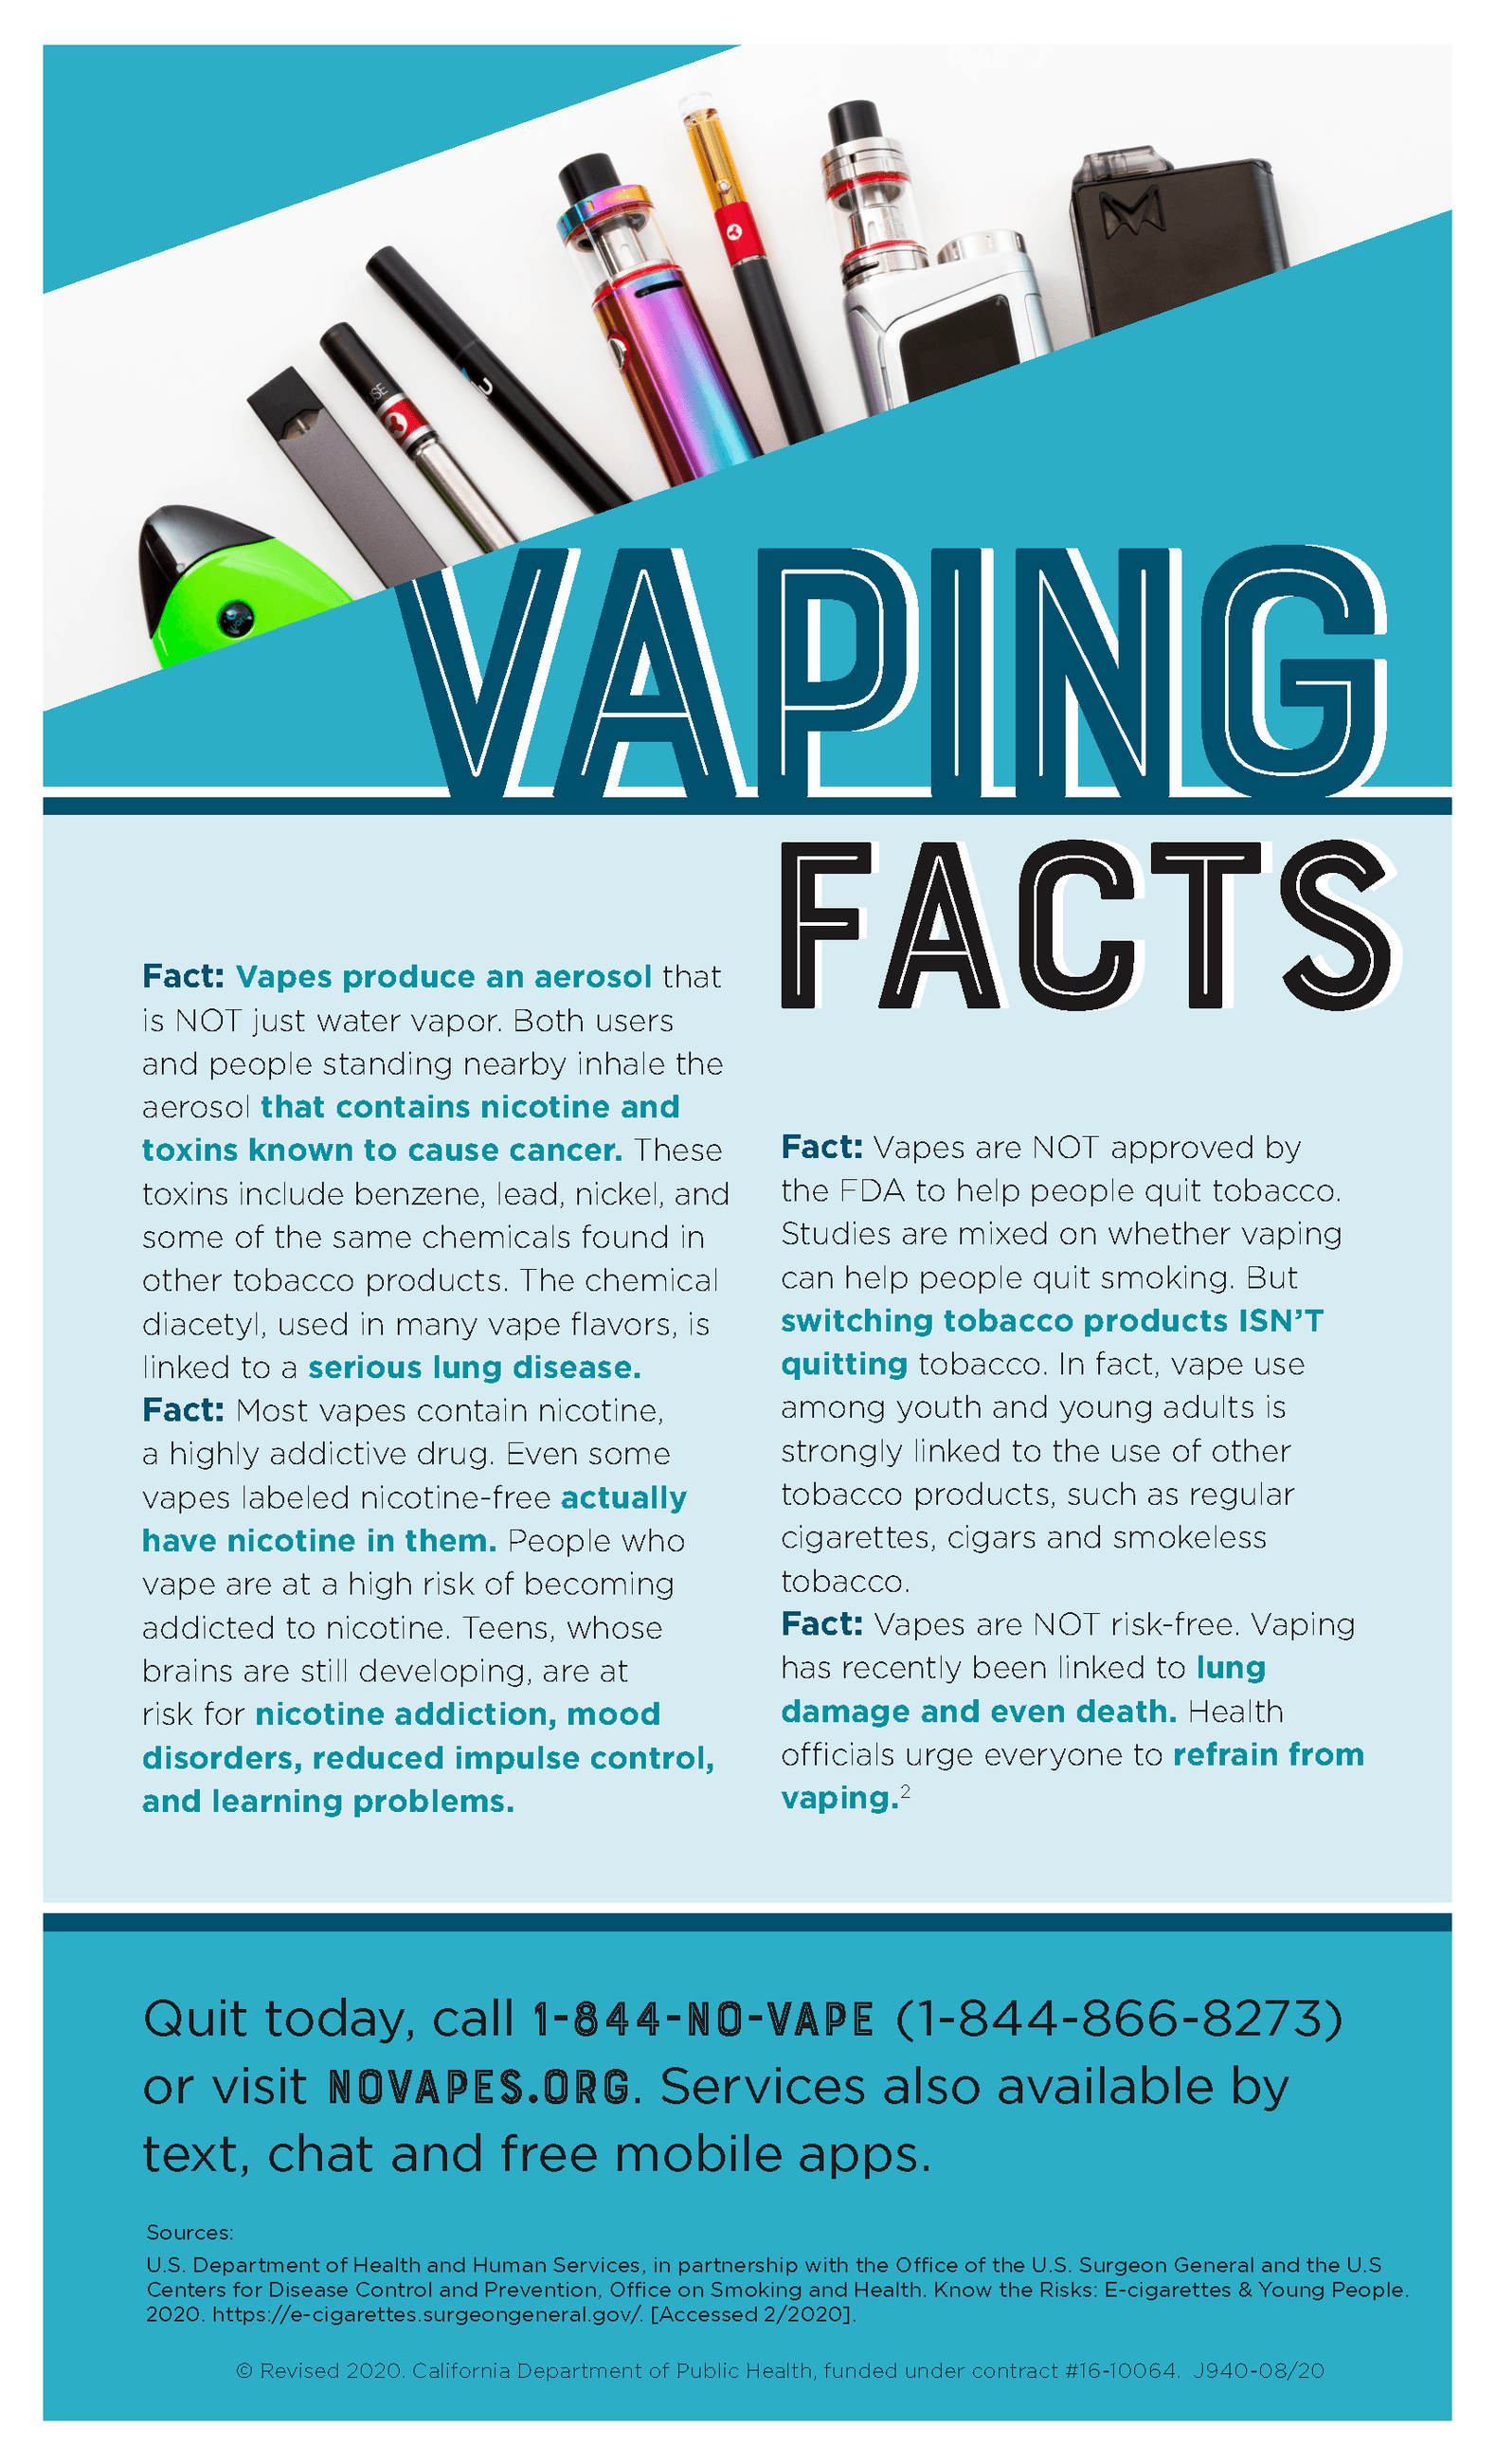 J940-vaping-facts-poster-download-legal